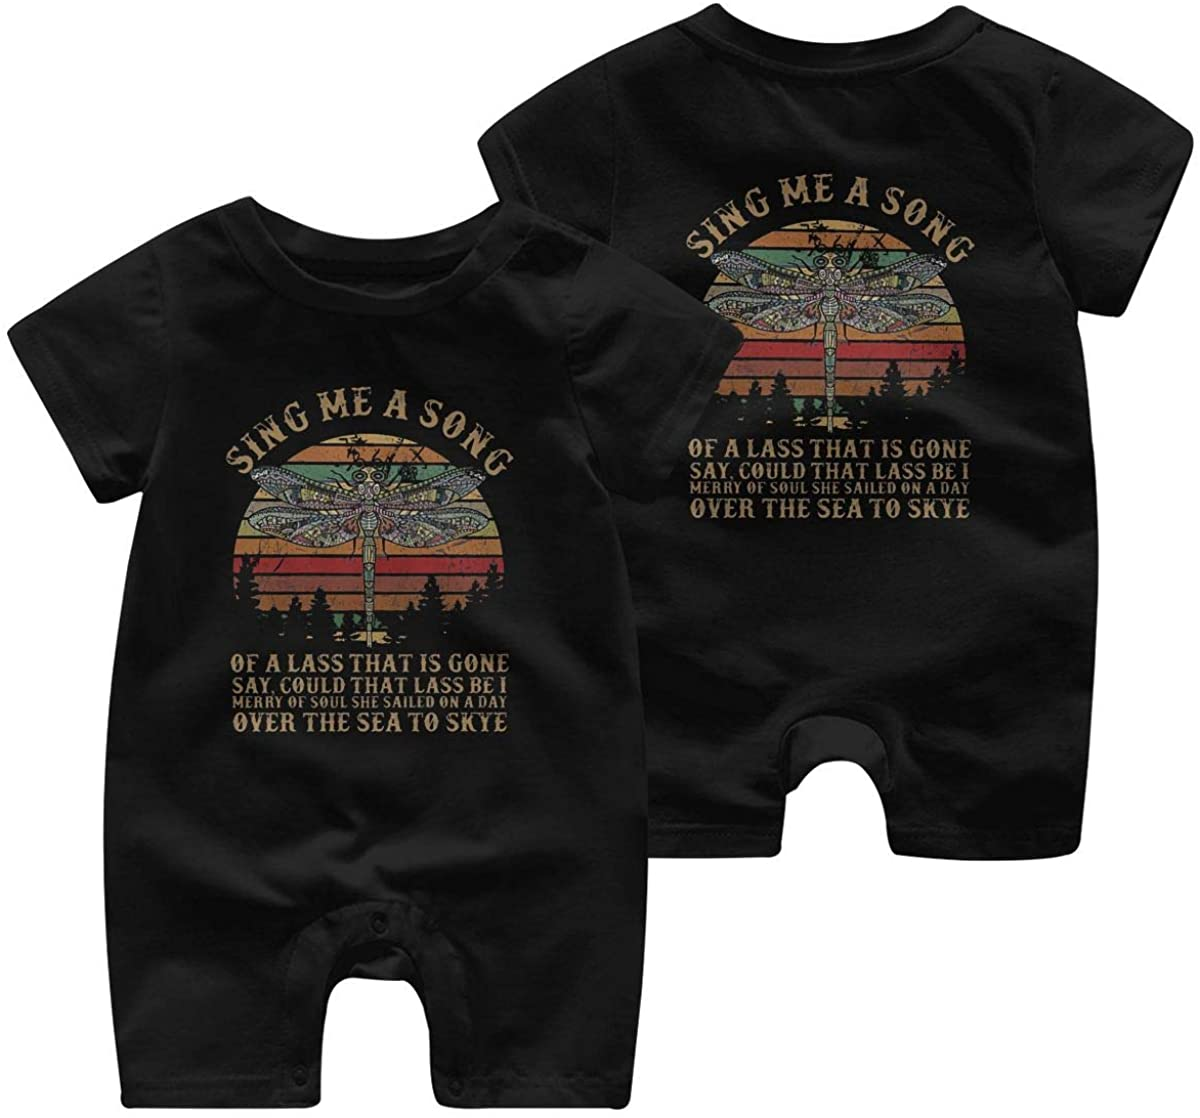 Mr.ChenHong Baby Outlander-Fly Sing Me A Song Short Sleeve Jumpsuit